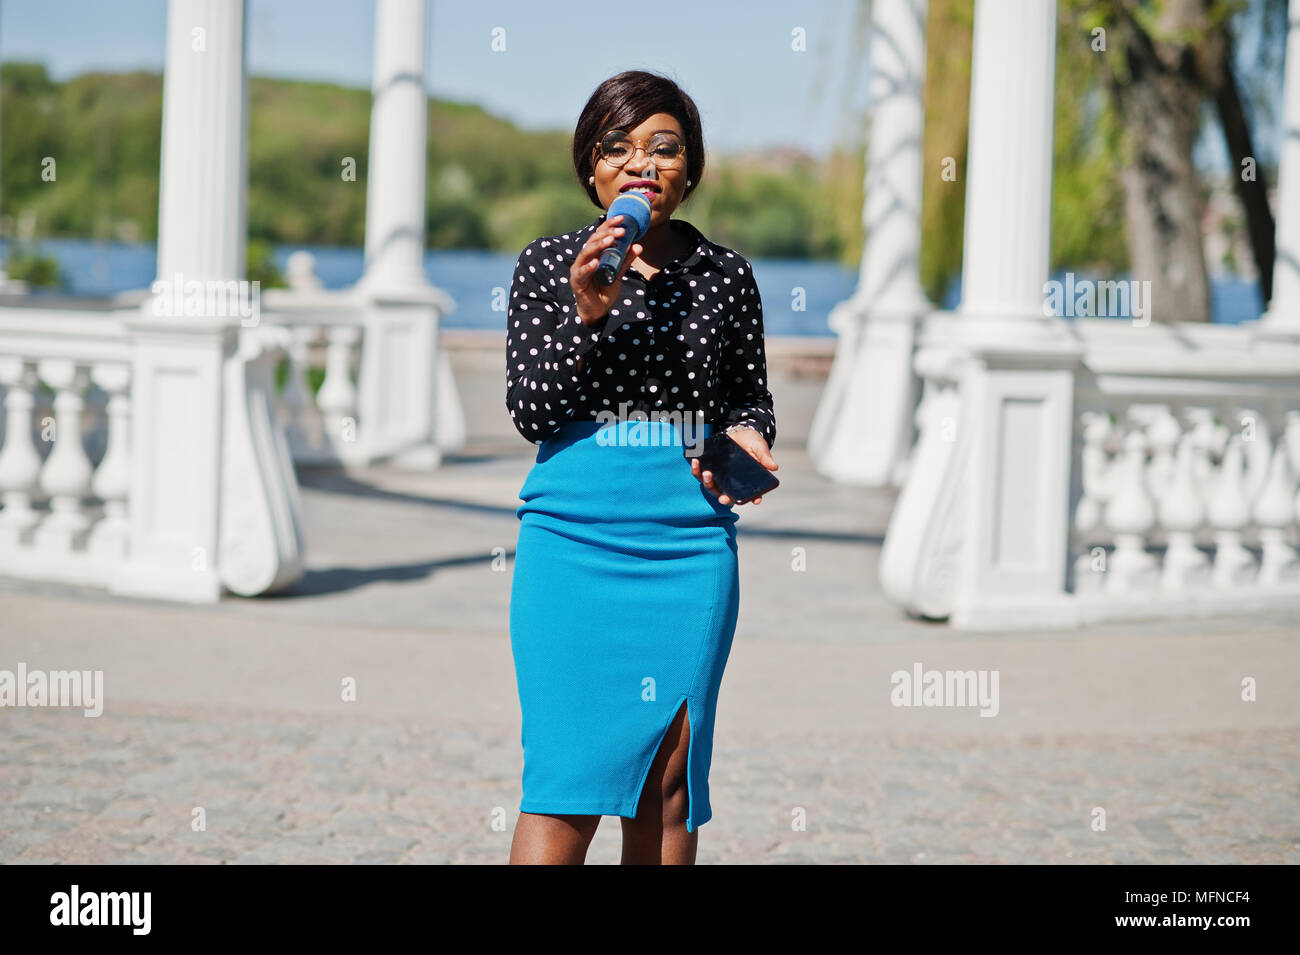 Stylish African American Model Girl Tv Presenter With Microphone In Glasses Blue Skirt And Black Blouse Posed Outdoor Against White Stone Arch With M